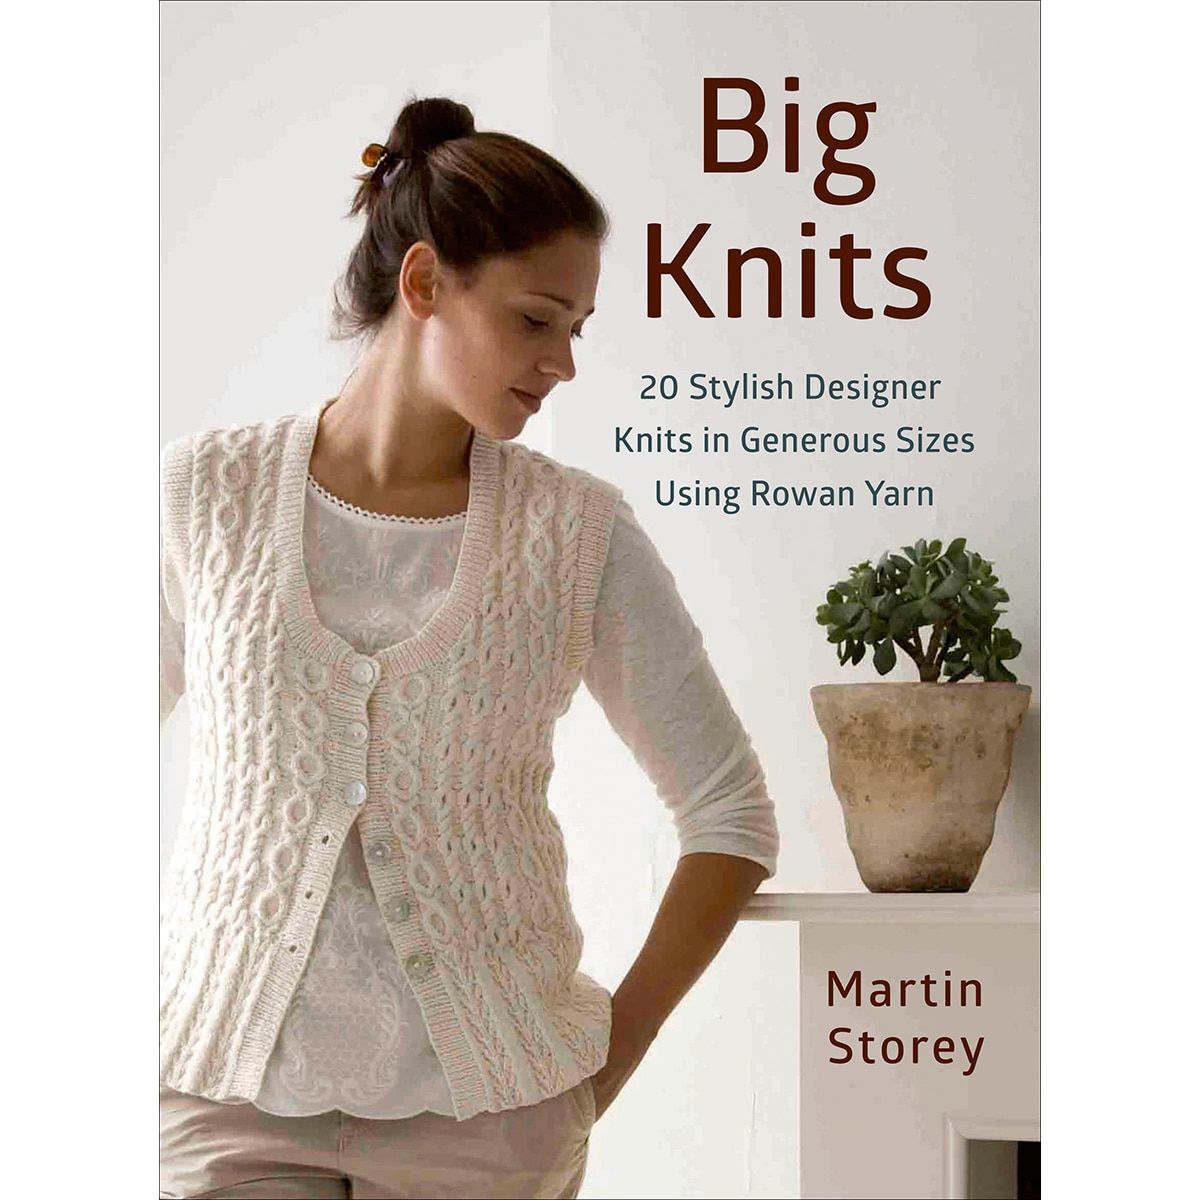 Macmillan publishers st martins books big knits products martins books big knits is a knitting patterns book with plus size projects to make looking for plus size knitting patterns to suit your contemporary bankloansurffo Gallery